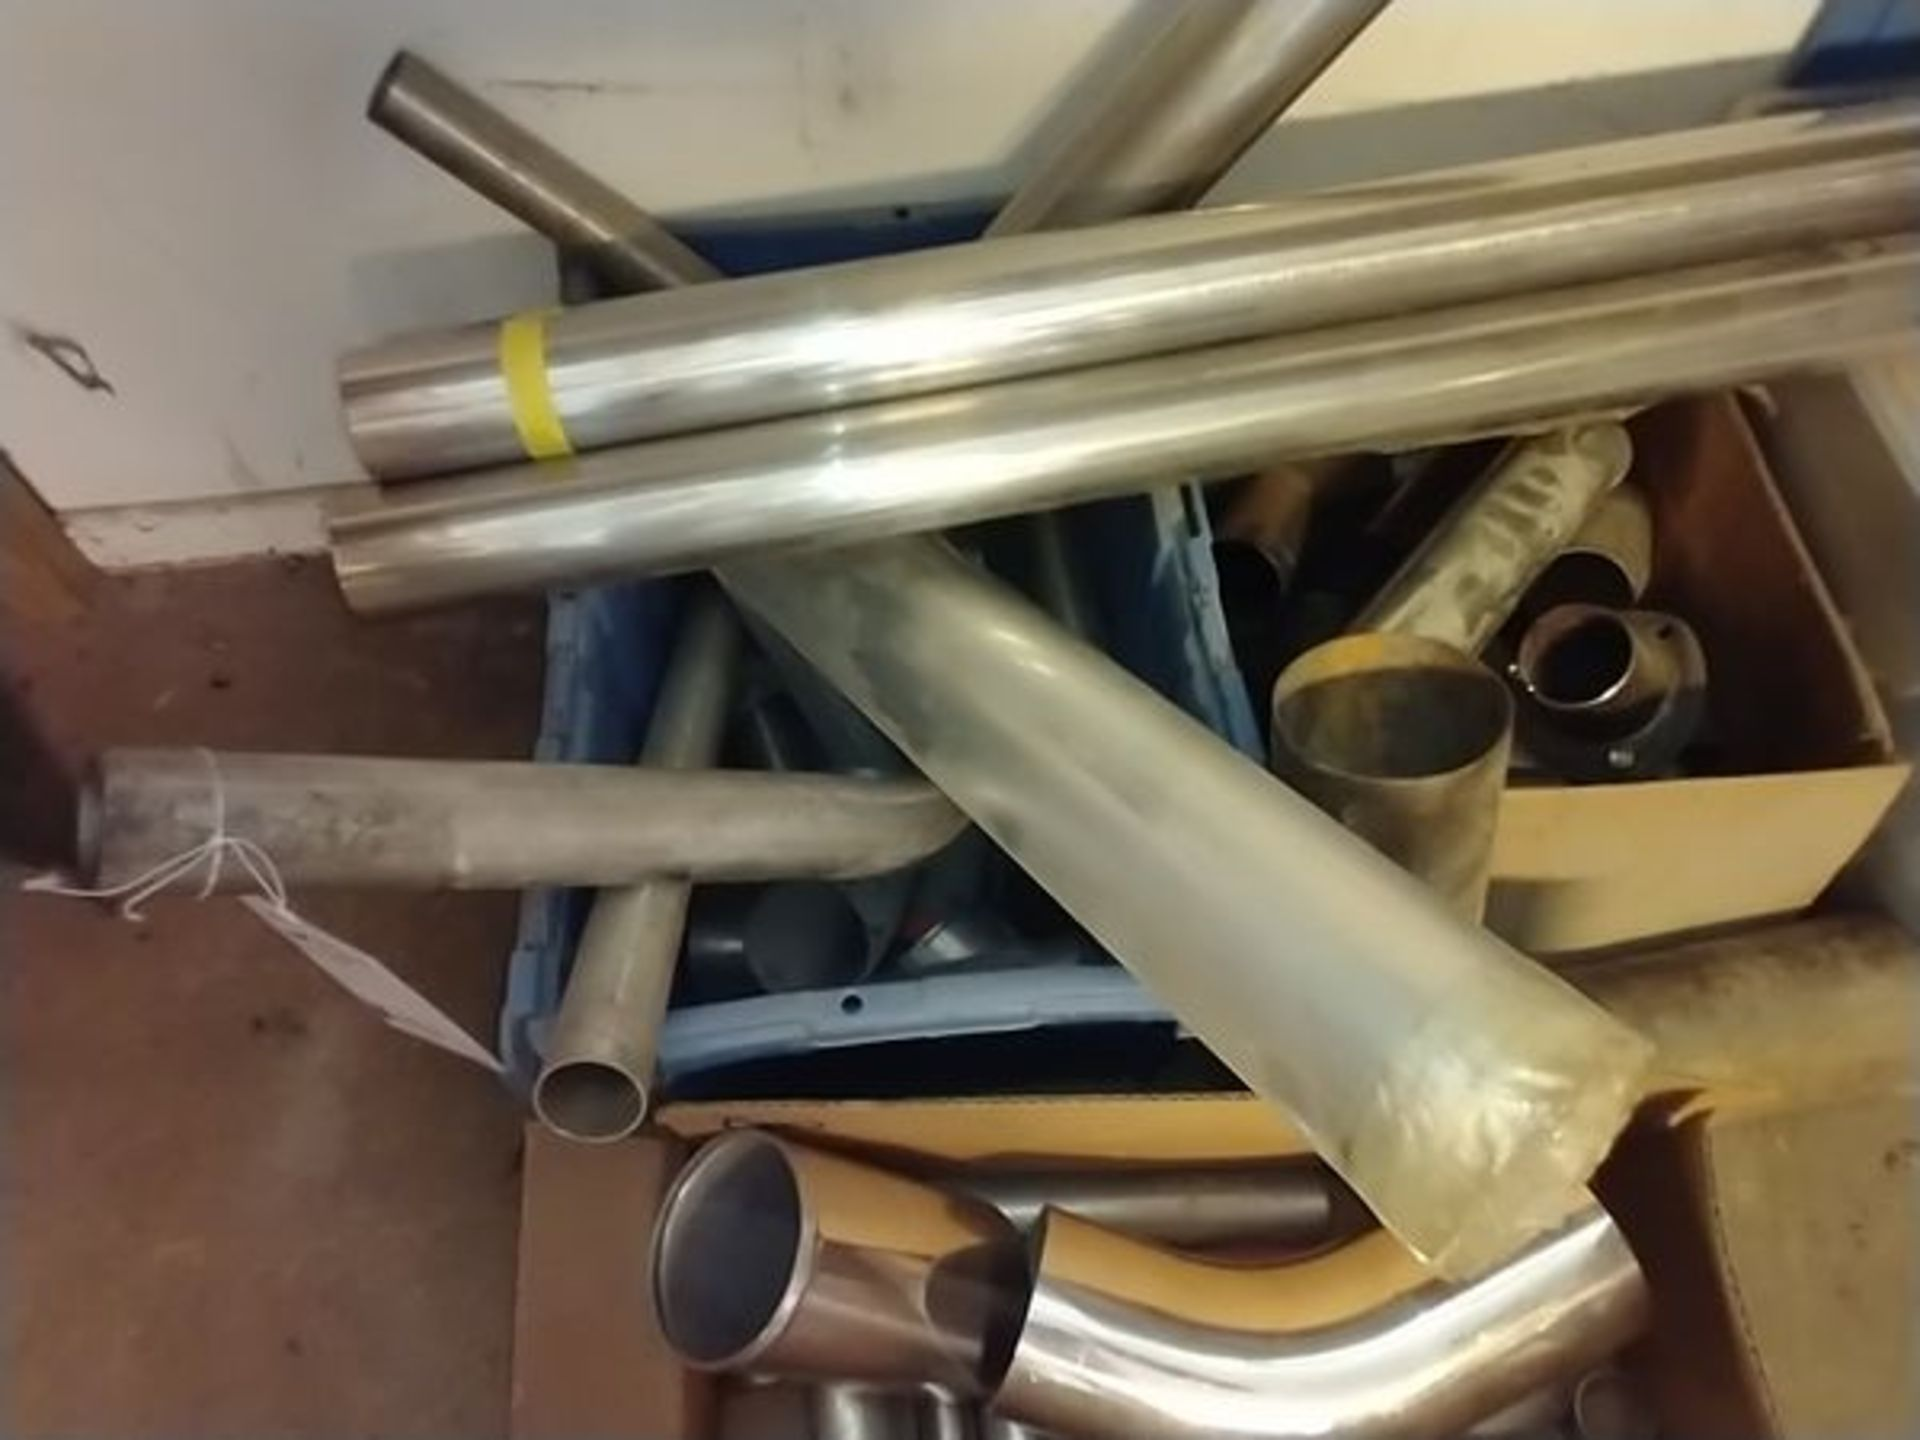 LOT OF ASSORTED MUFFLER PARTS - Image 3 of 4